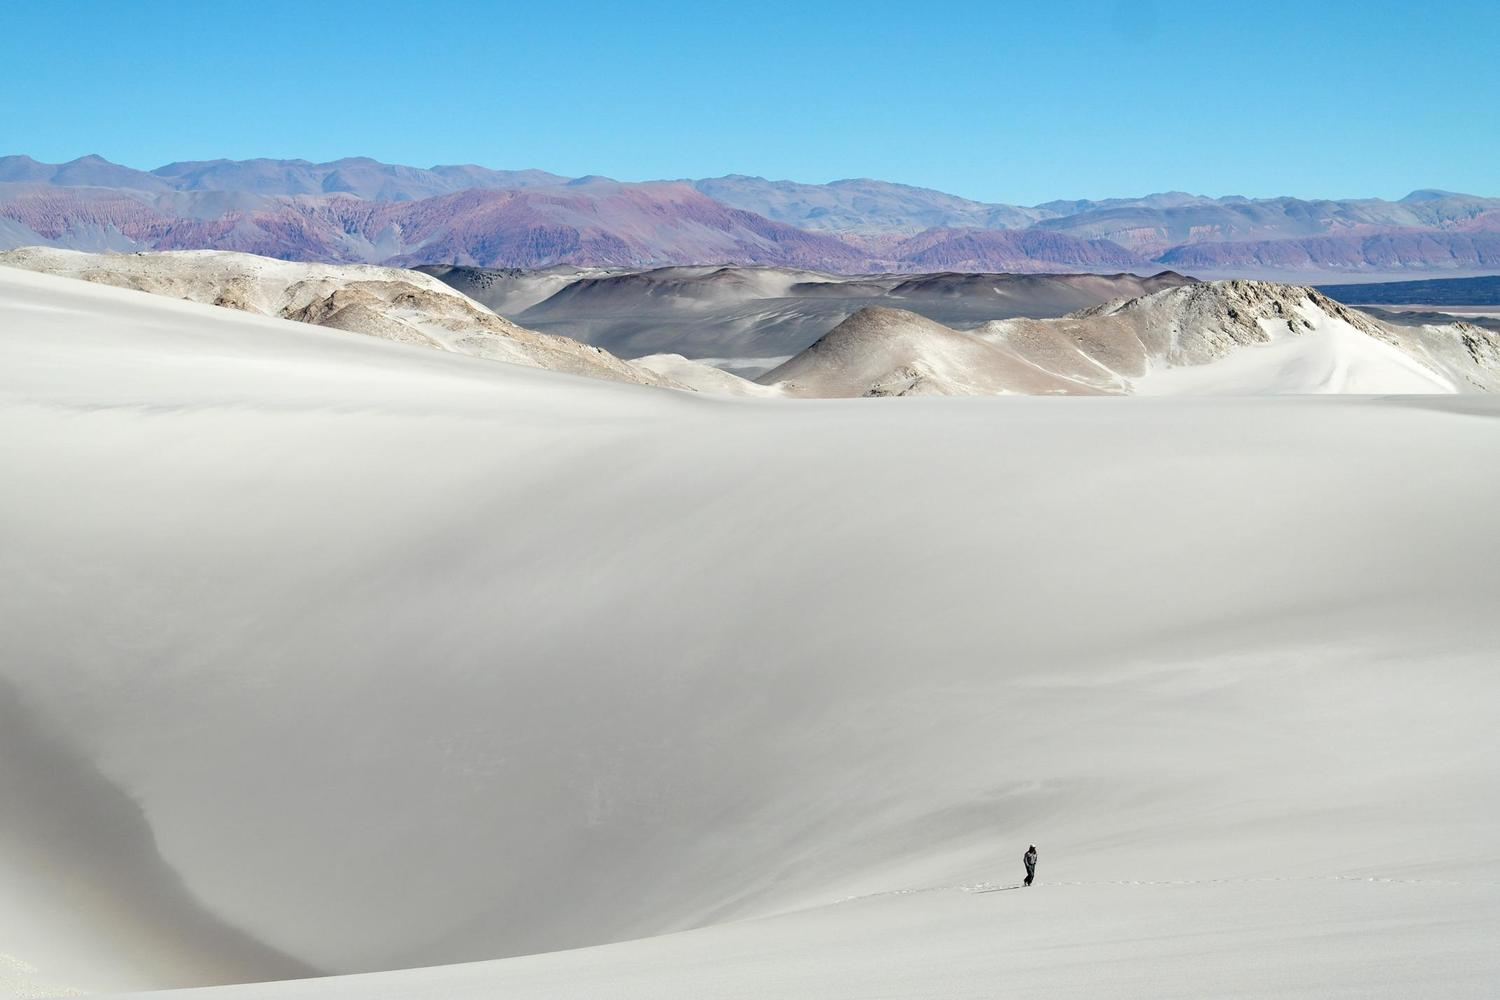 Walking across the sand dunes of the Puna, in the north west of Argentina